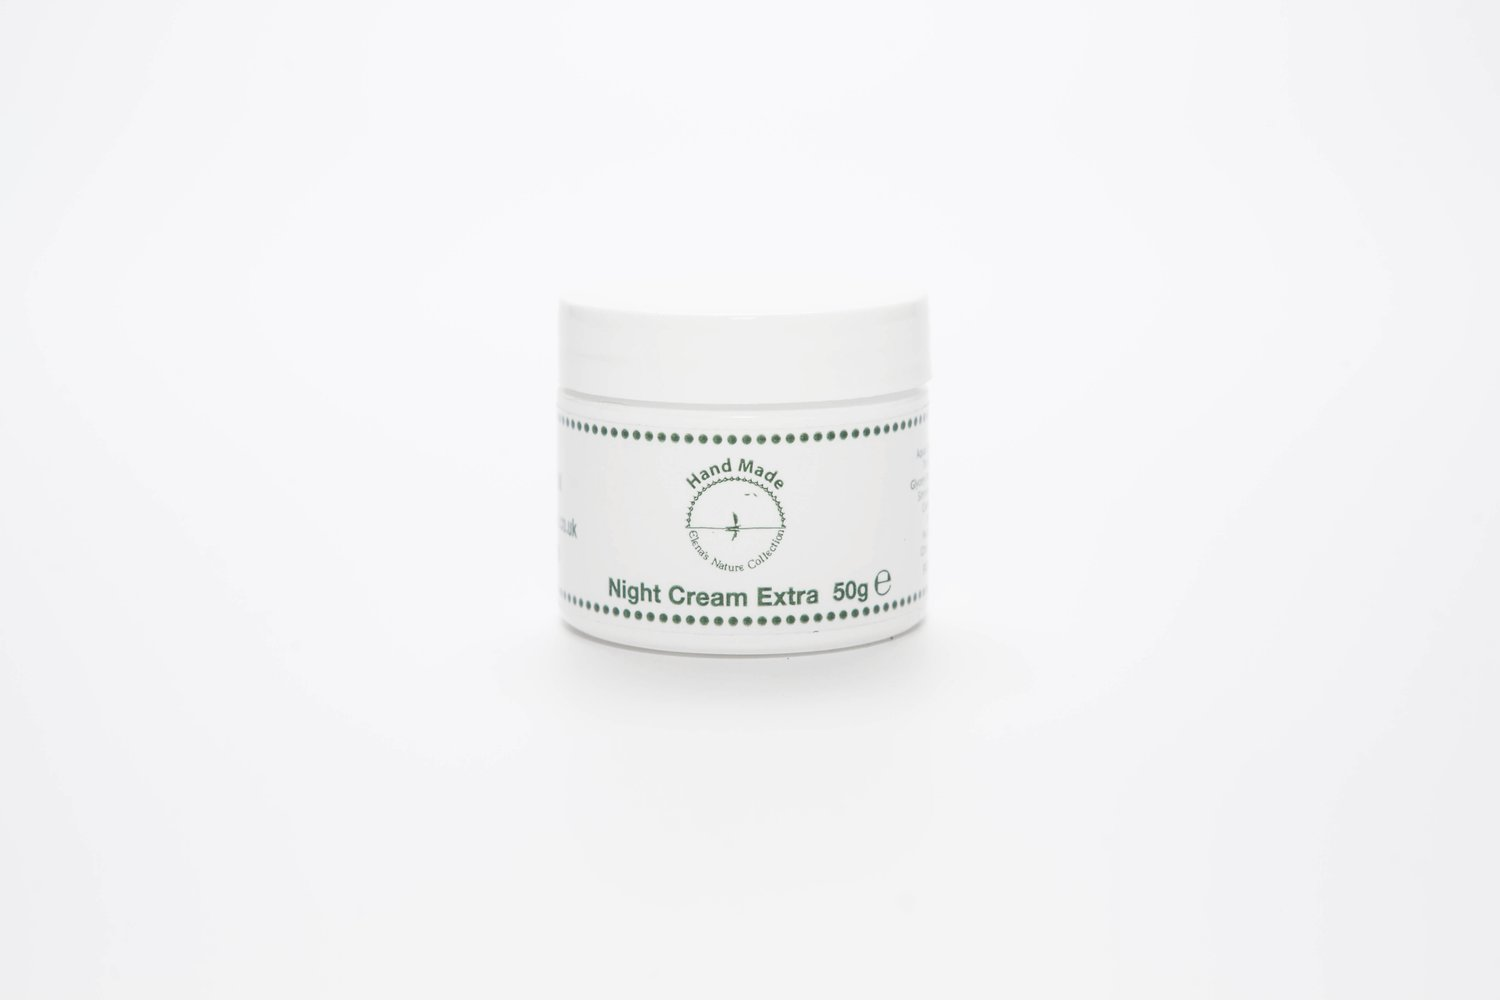 Night Cream Extra 50g